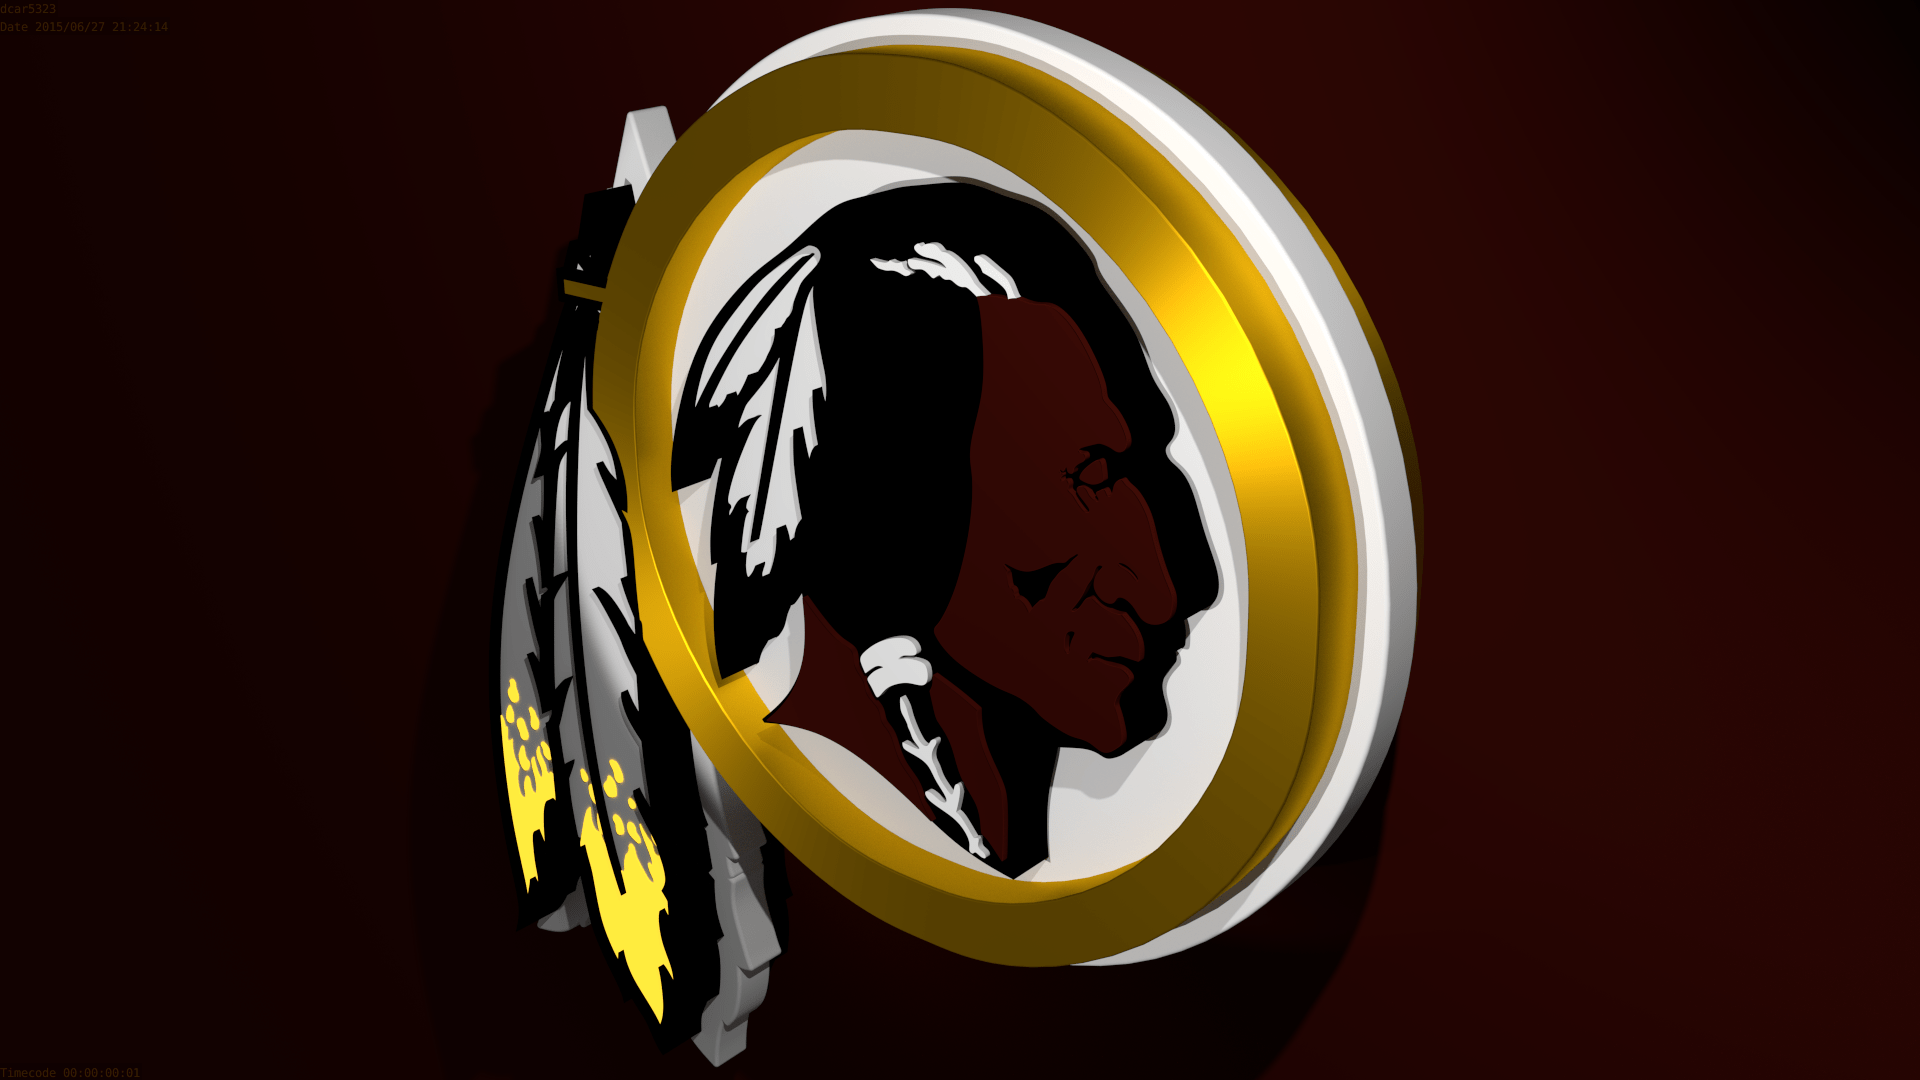 Download Lovely Wallpapers With Quotes Redskins Wallpaper Hd Pixelstalk Net